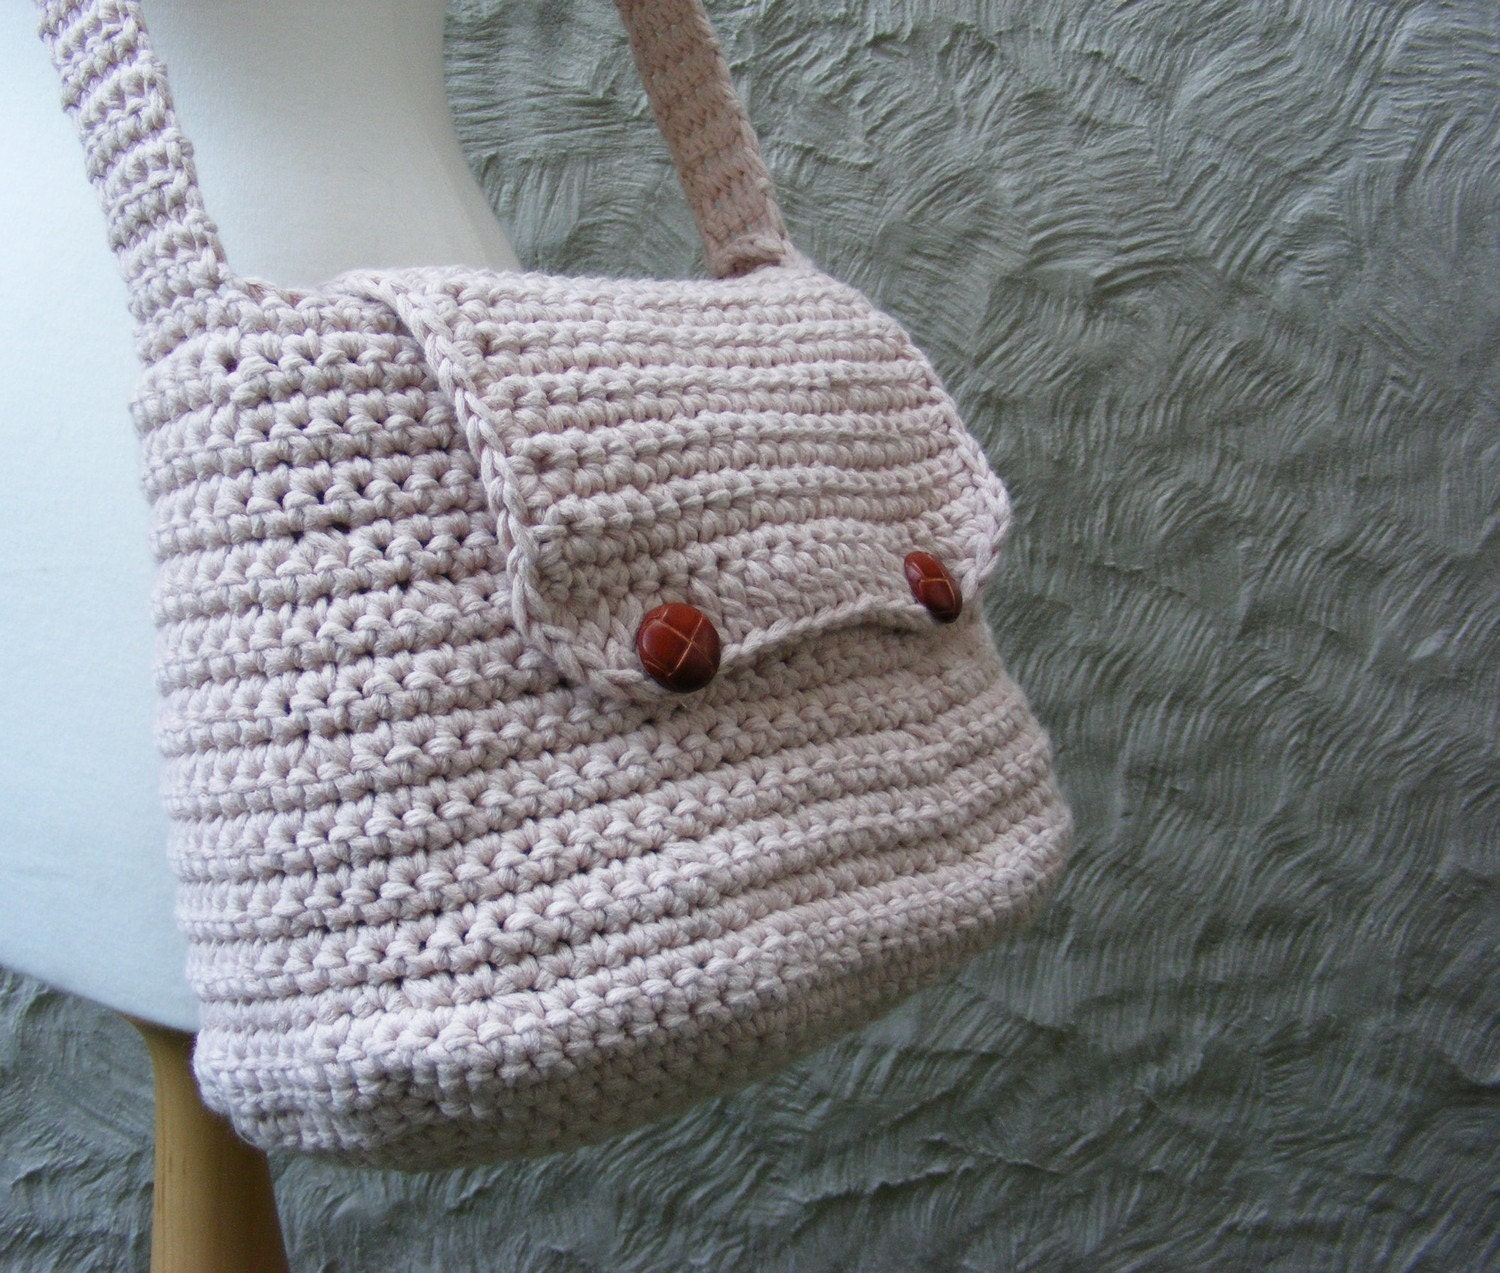 Crochet Handbags : Messenger Bag Crochet Pattern / Tutorial by TheHappyCrocheter